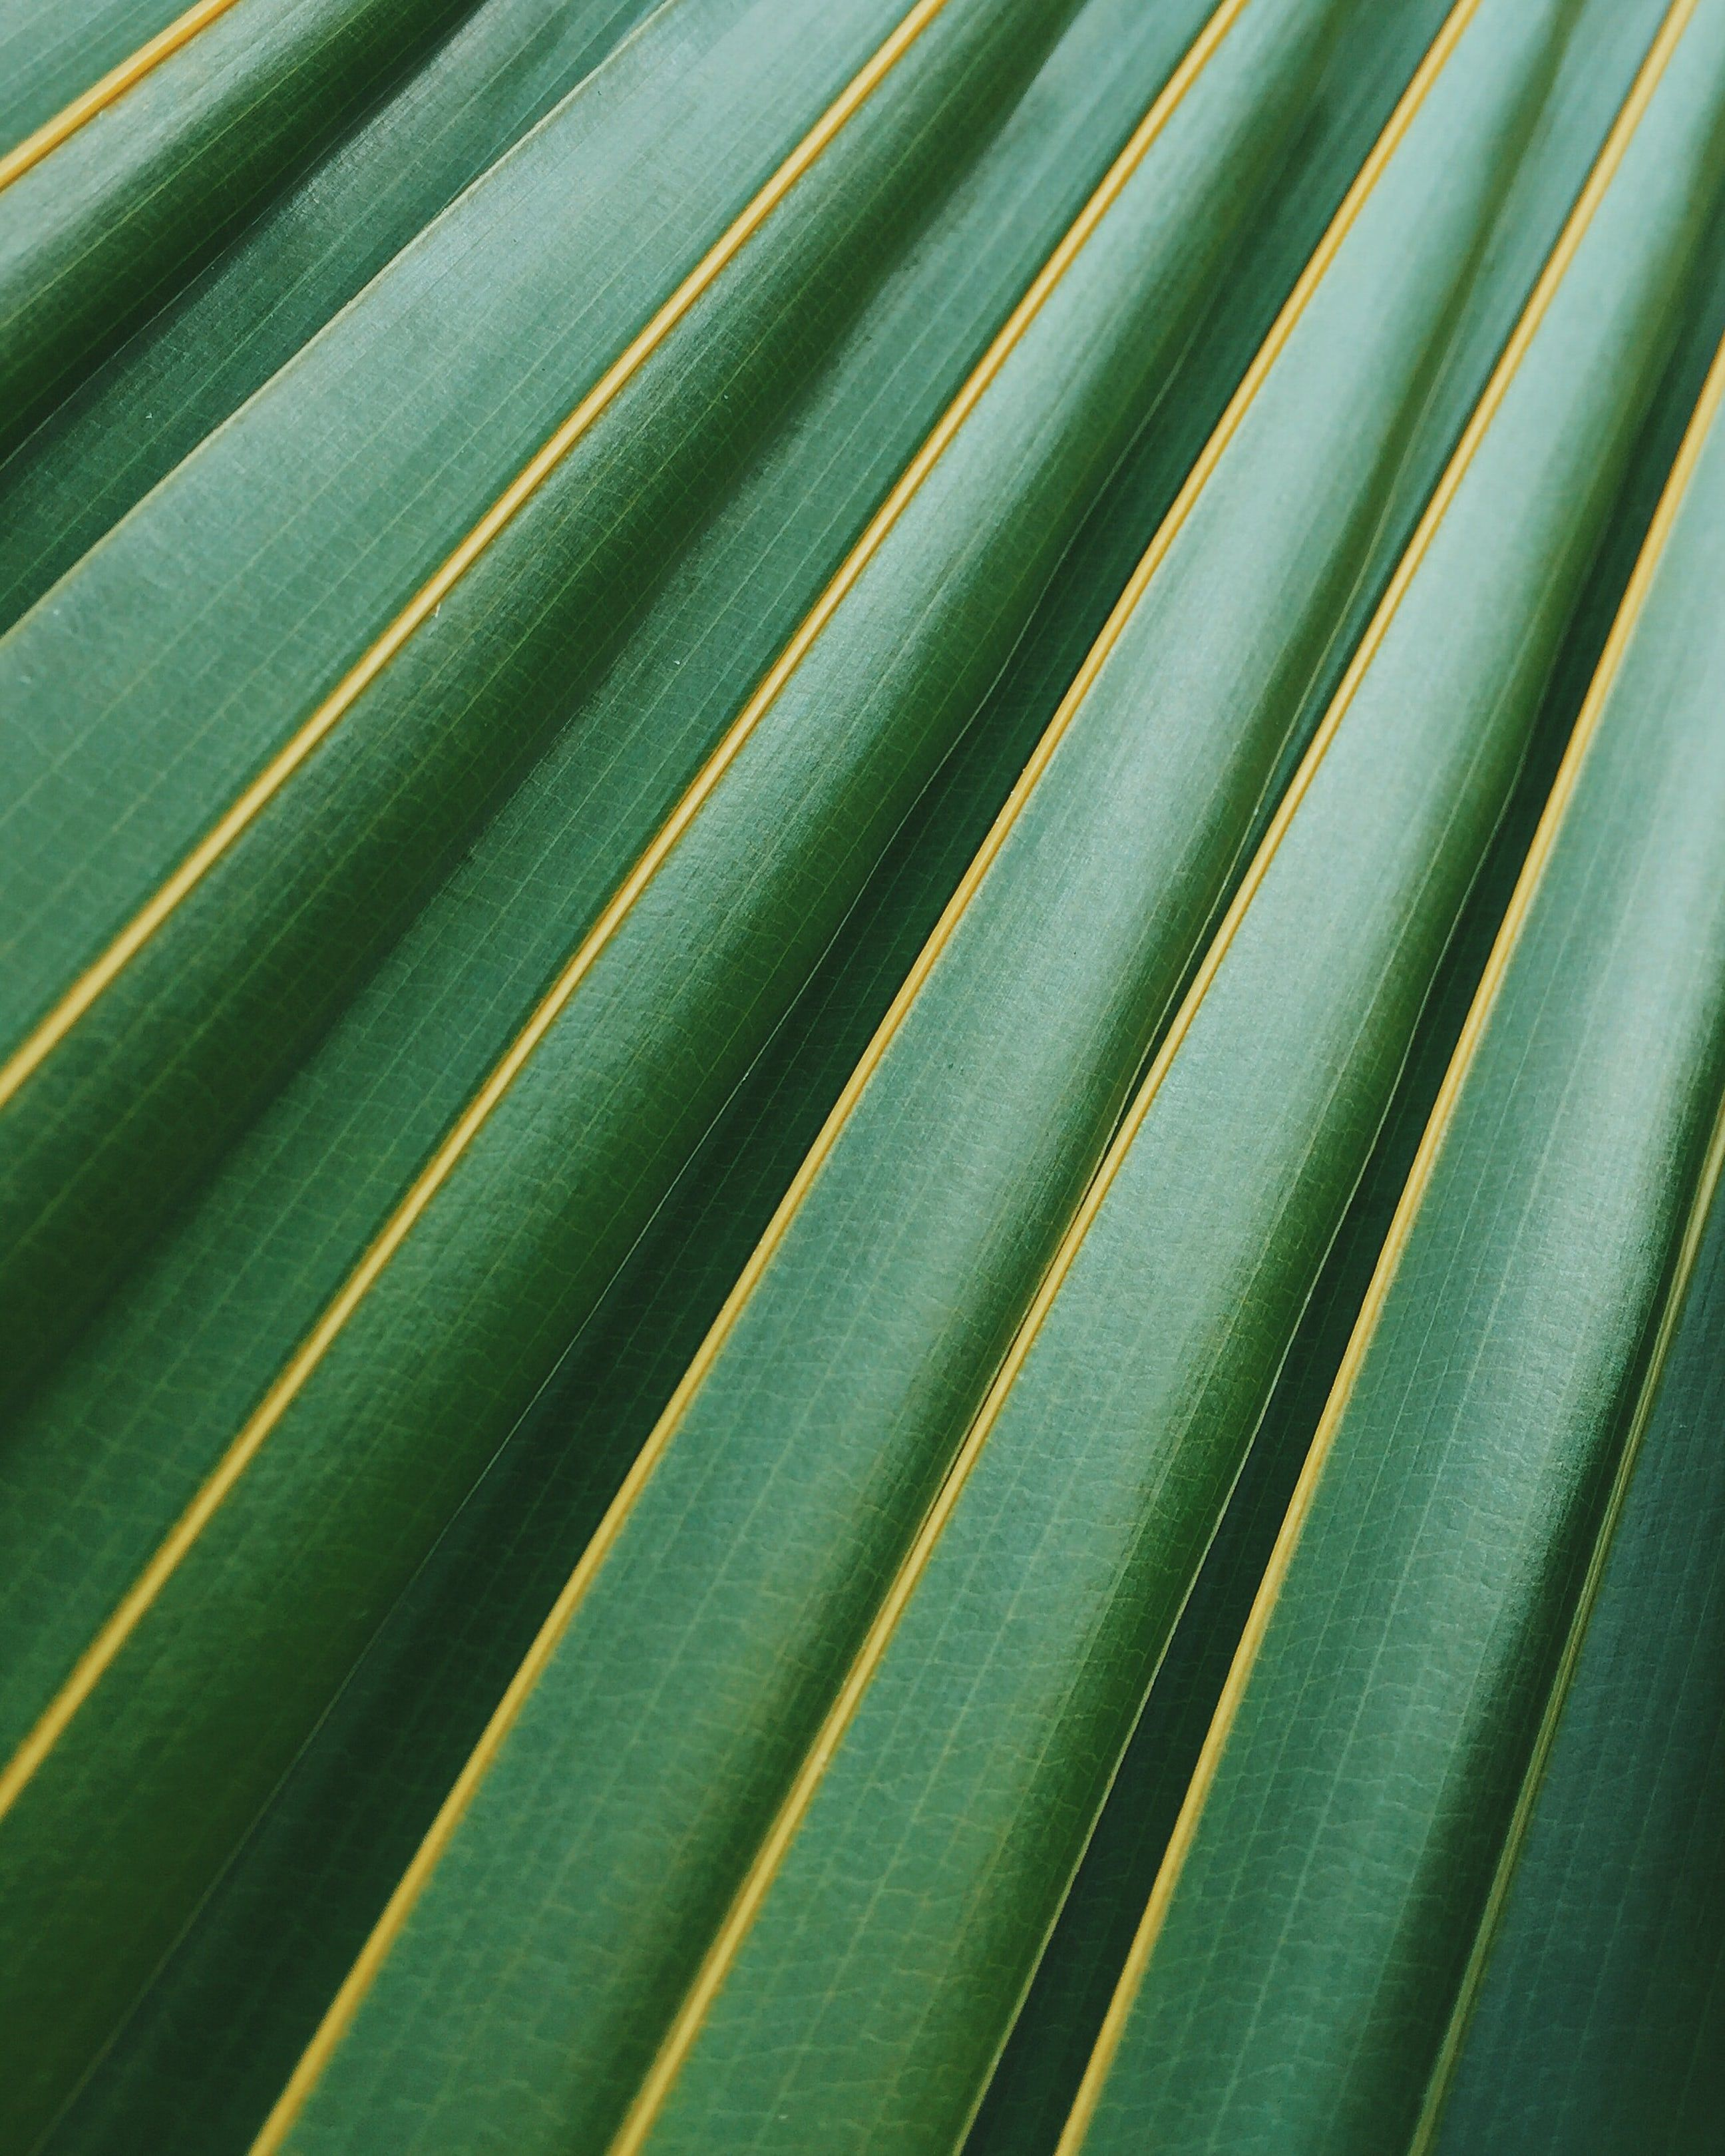 20 Palm Tree Pictures